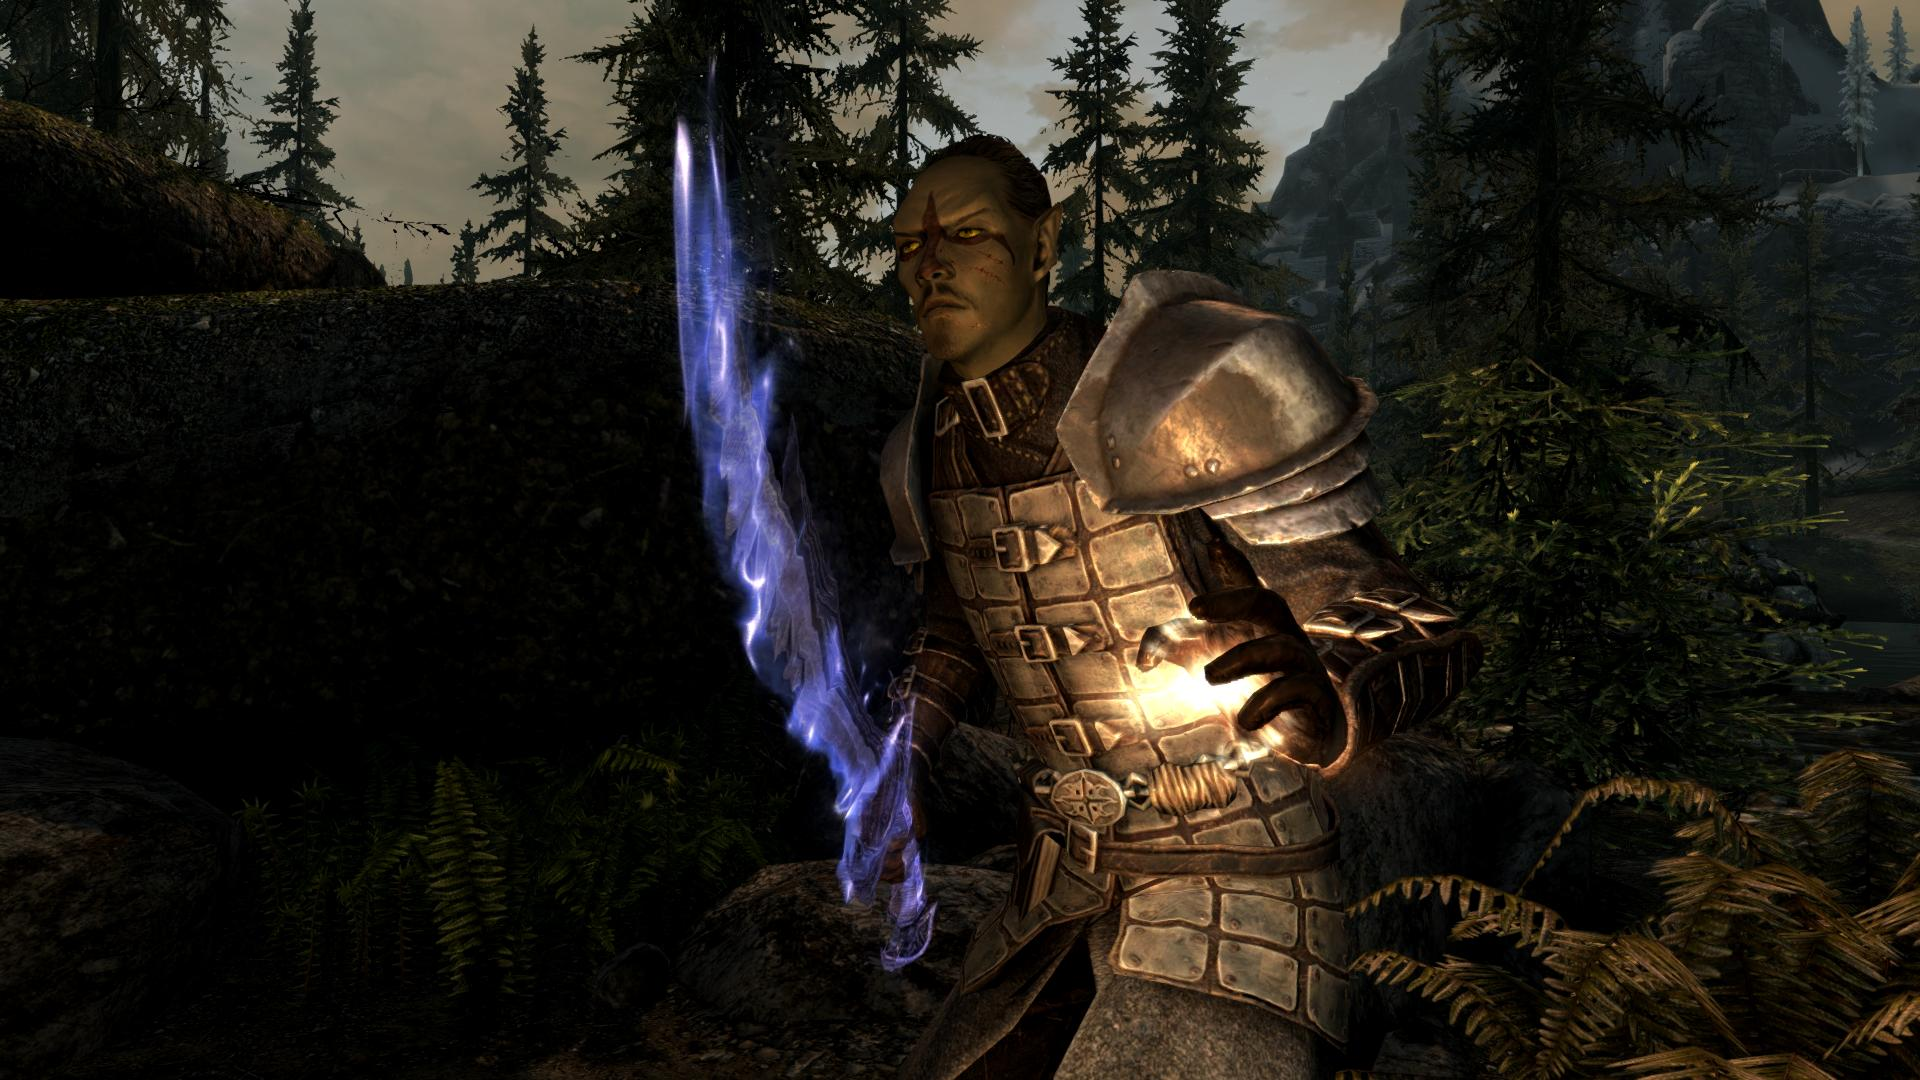 The Lost Monk has found his way with the Dawnguard – pcoutcast